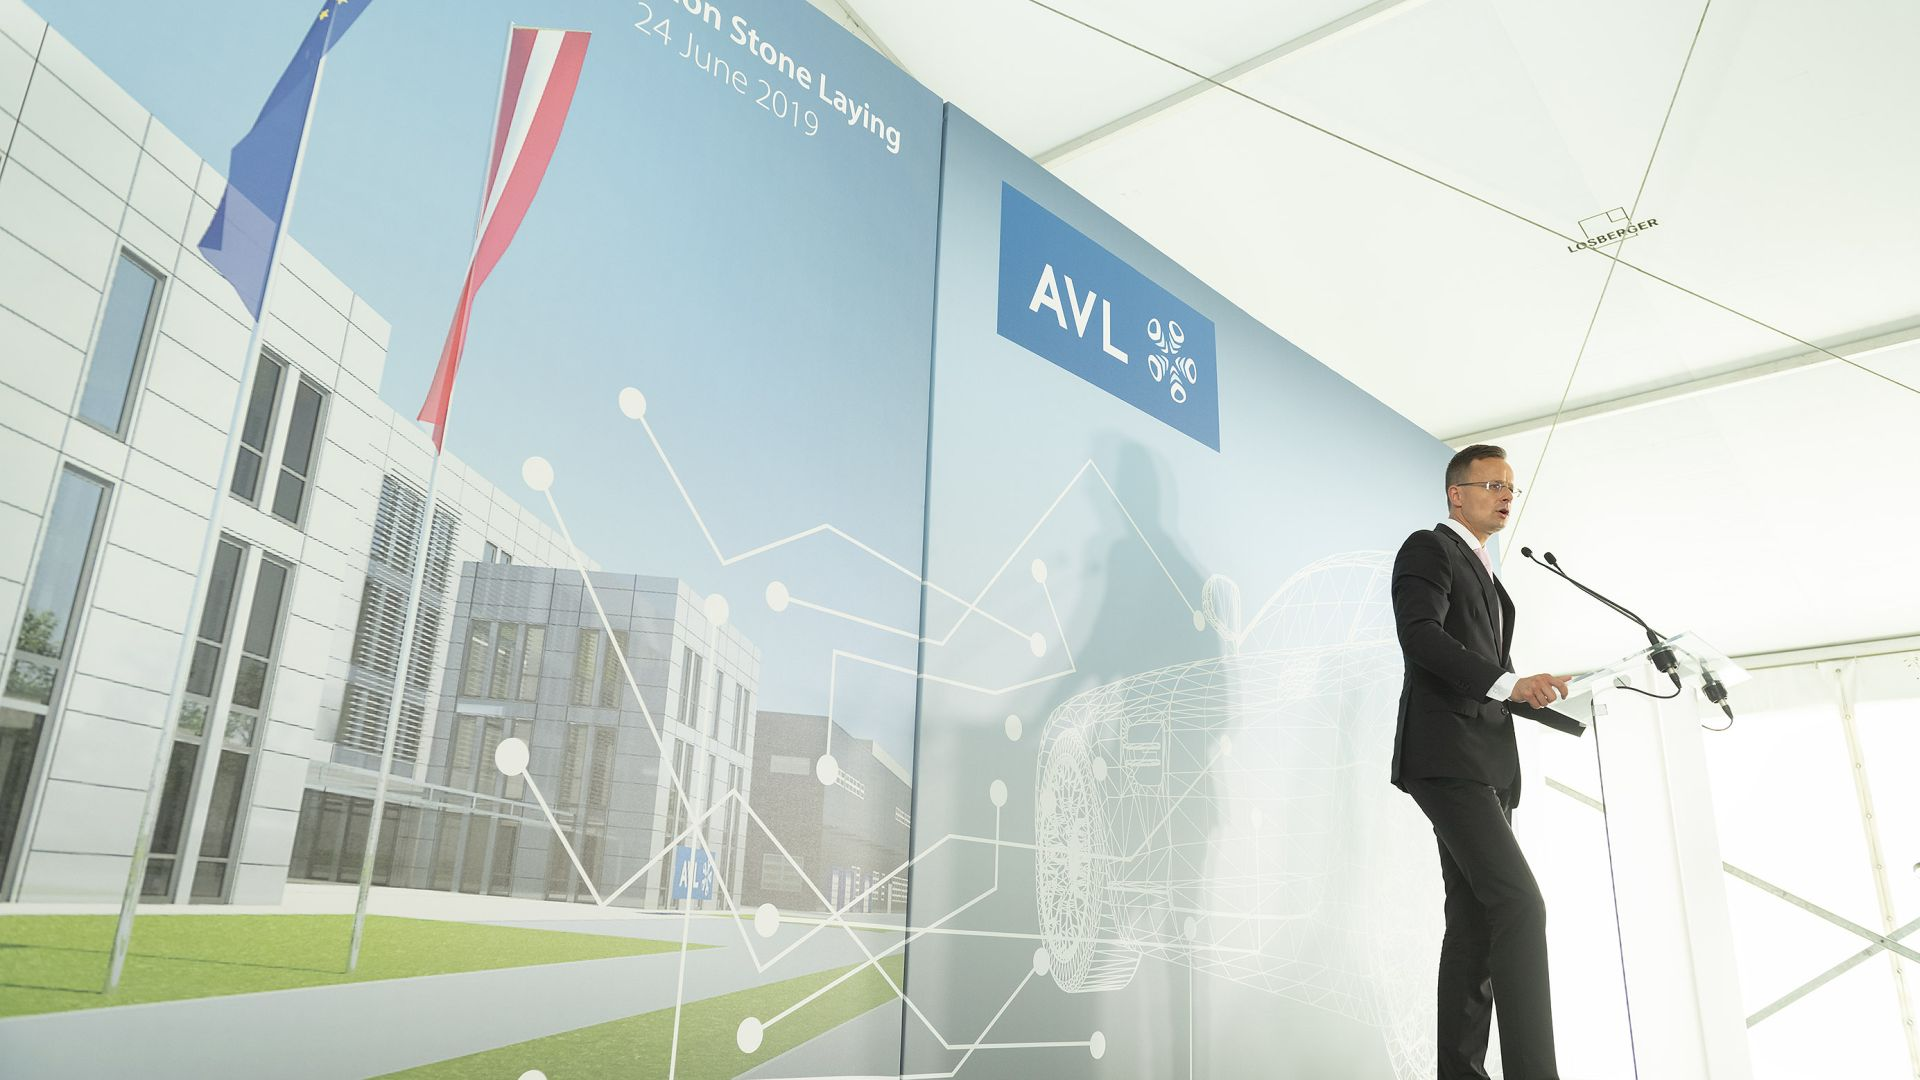 The foundation stone of the new AVL headquarters and R&D centre has been laid in Érd